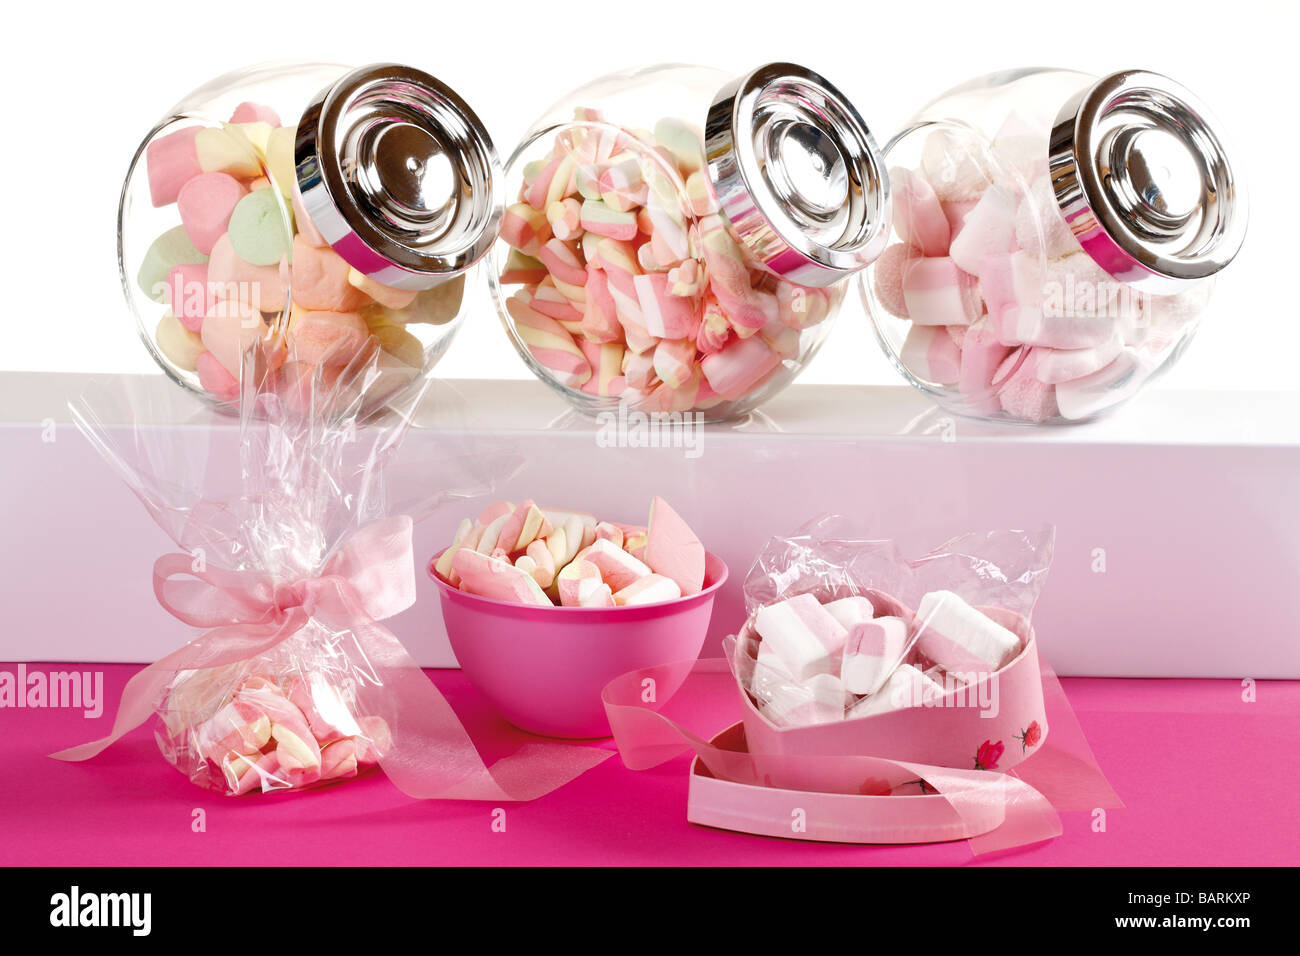 Jars In A Row Stock Photos & Jars In A Row Stock Images - Alamy